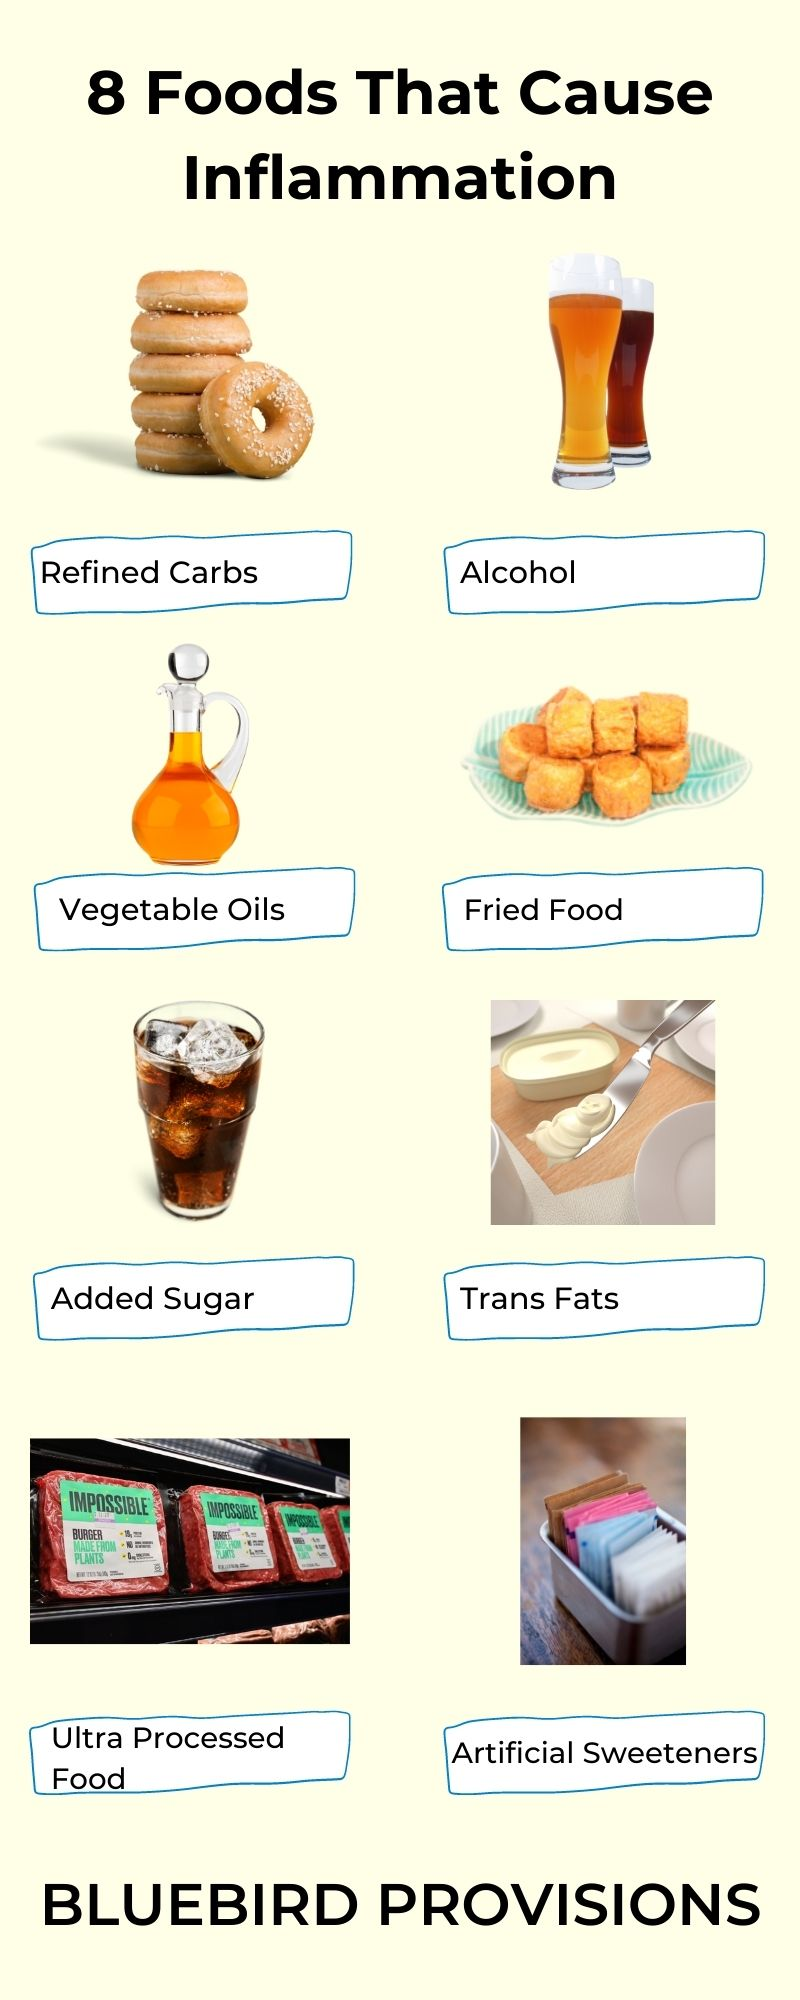 8 Foods that cause Inflammation